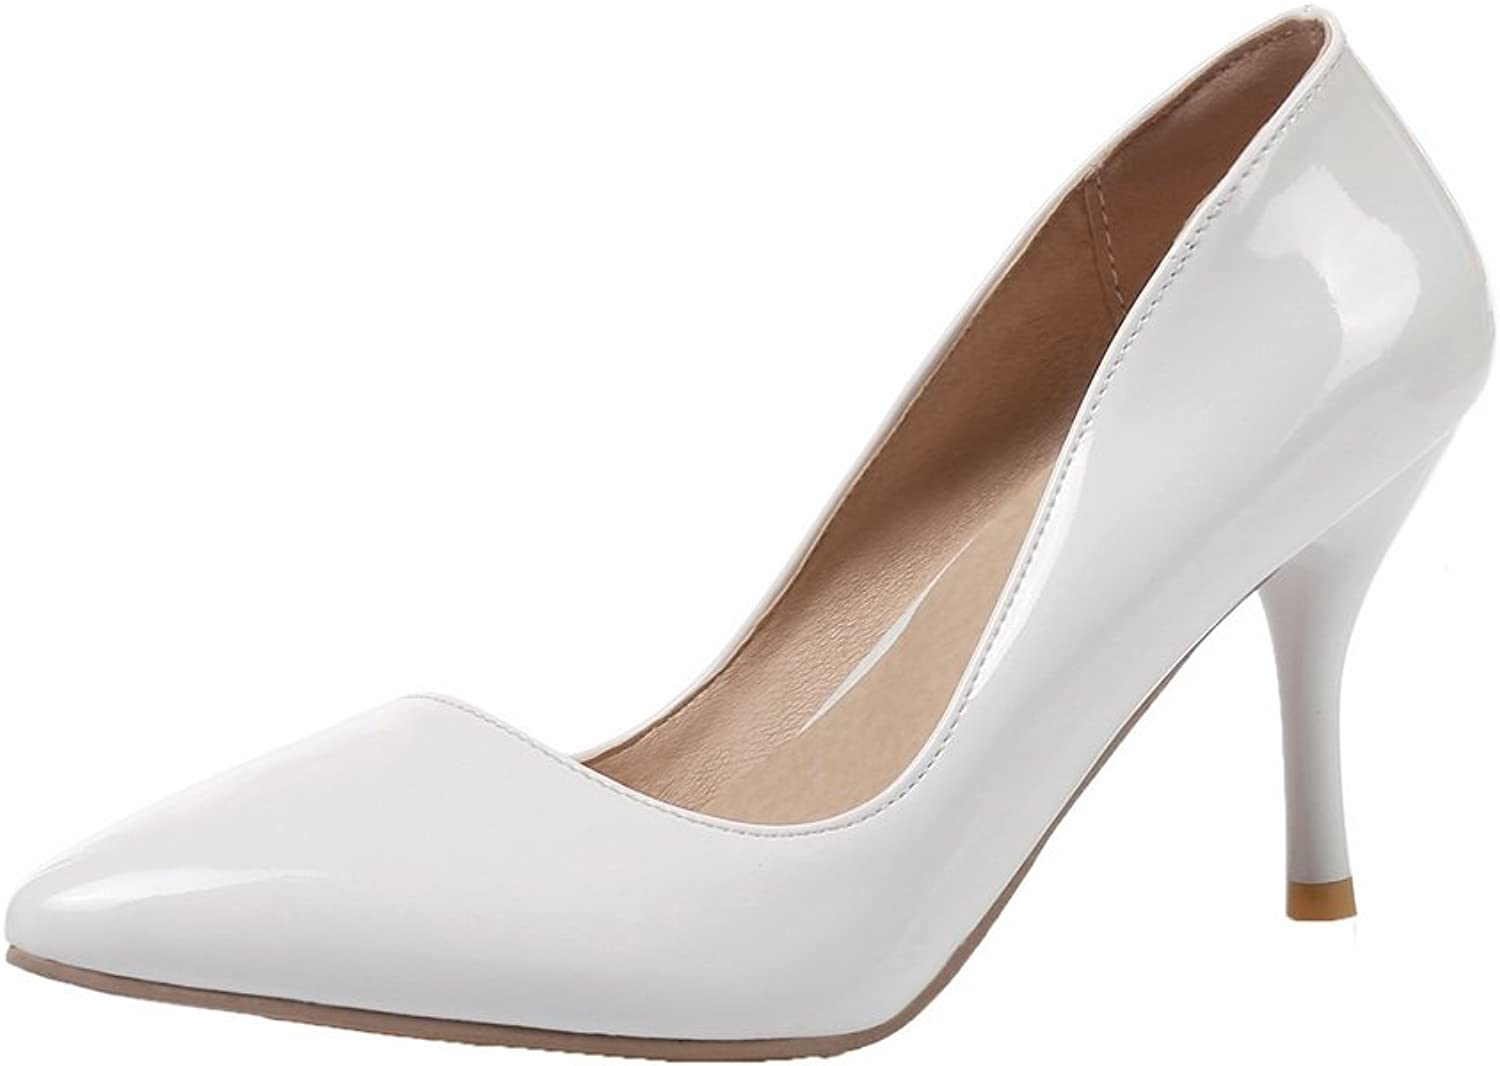 WeenFashion Women's Solid PU High-Heels Closed-Toe Pull-On Pumps-shoes